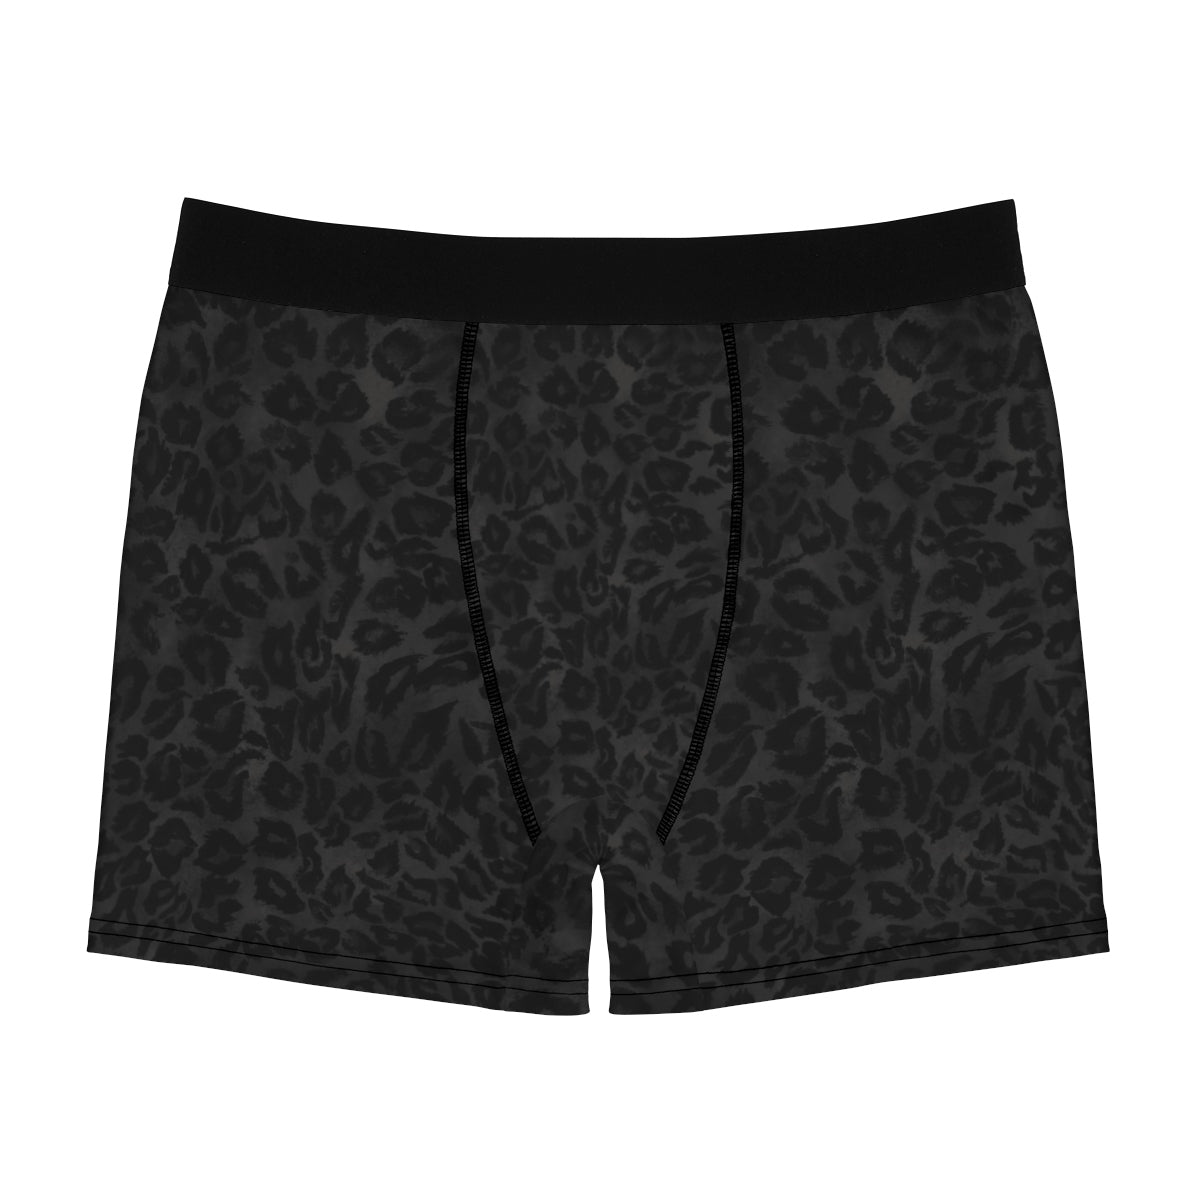 Black Leopard Wild Animal Print Sexy Hot Men's Boxer Briefs Underwear(US Size: XS-3XL)-Men's Underwear-L-Black Seams-Heidi Kimura Art LLC